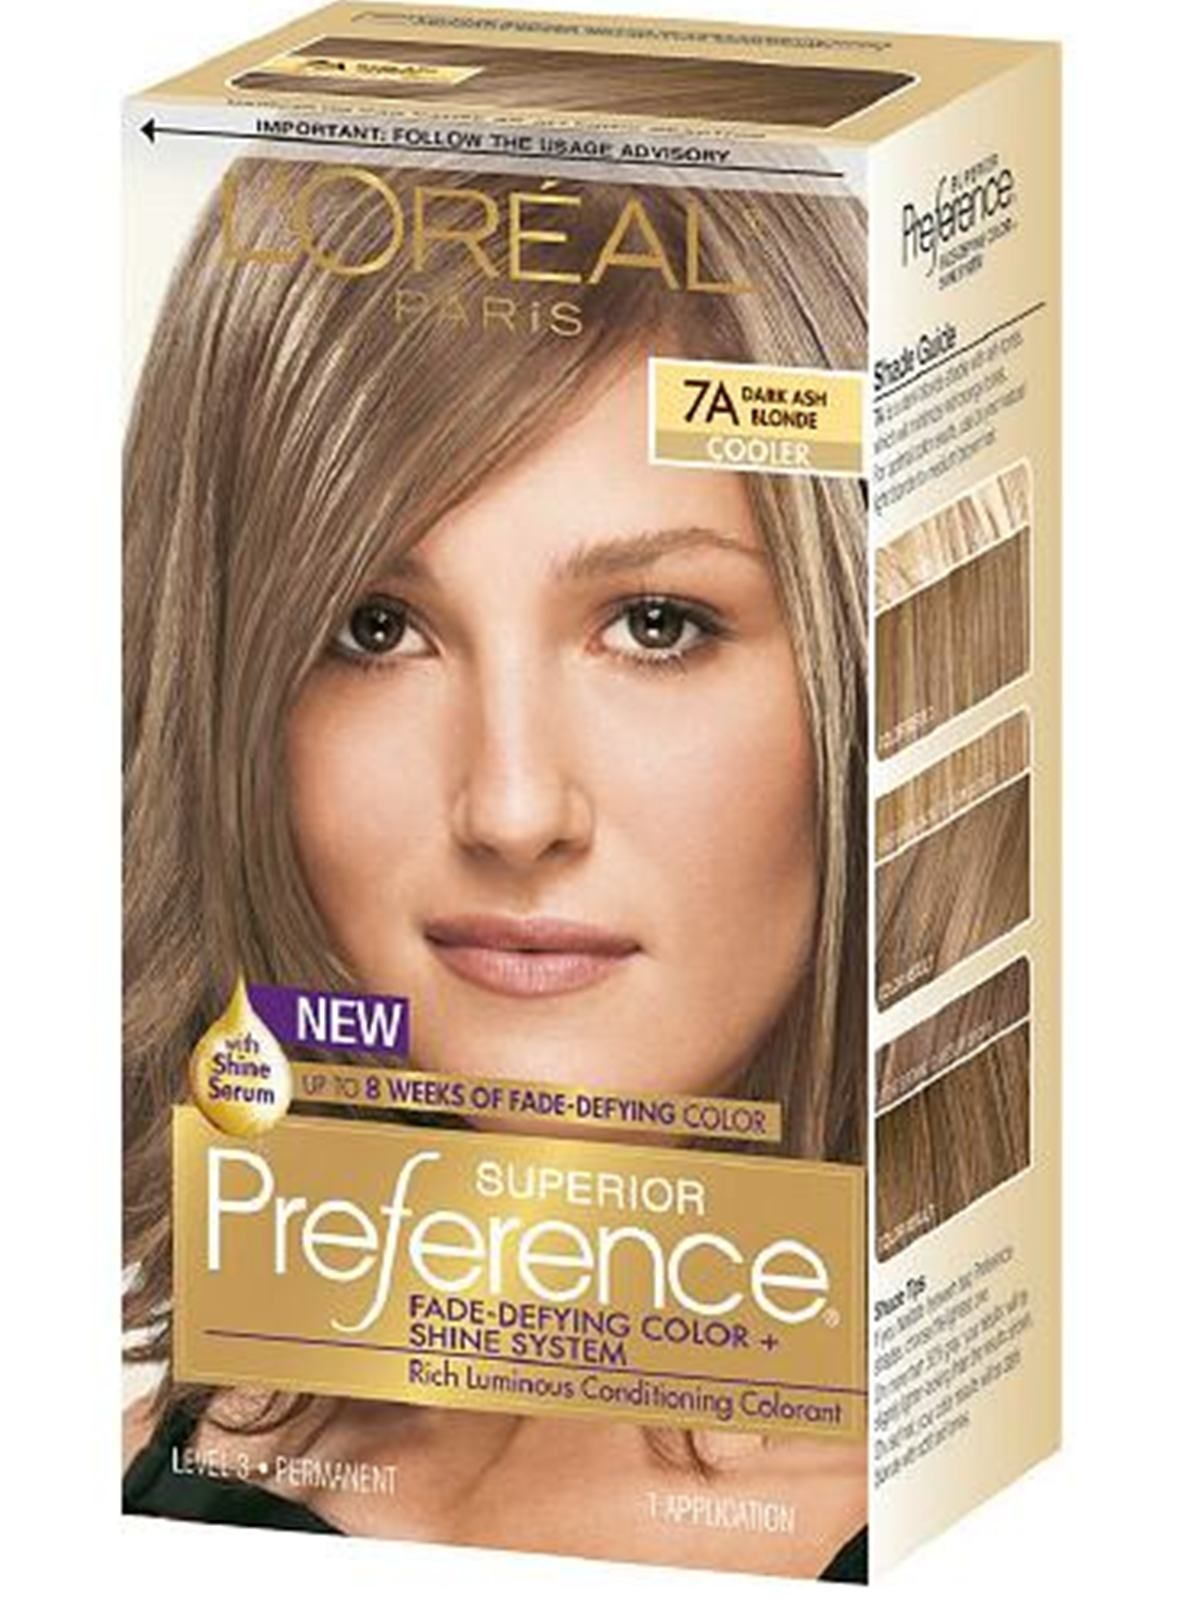 Loreal Hair Color Dark Ash Blonde Is A Long Lasting Color With